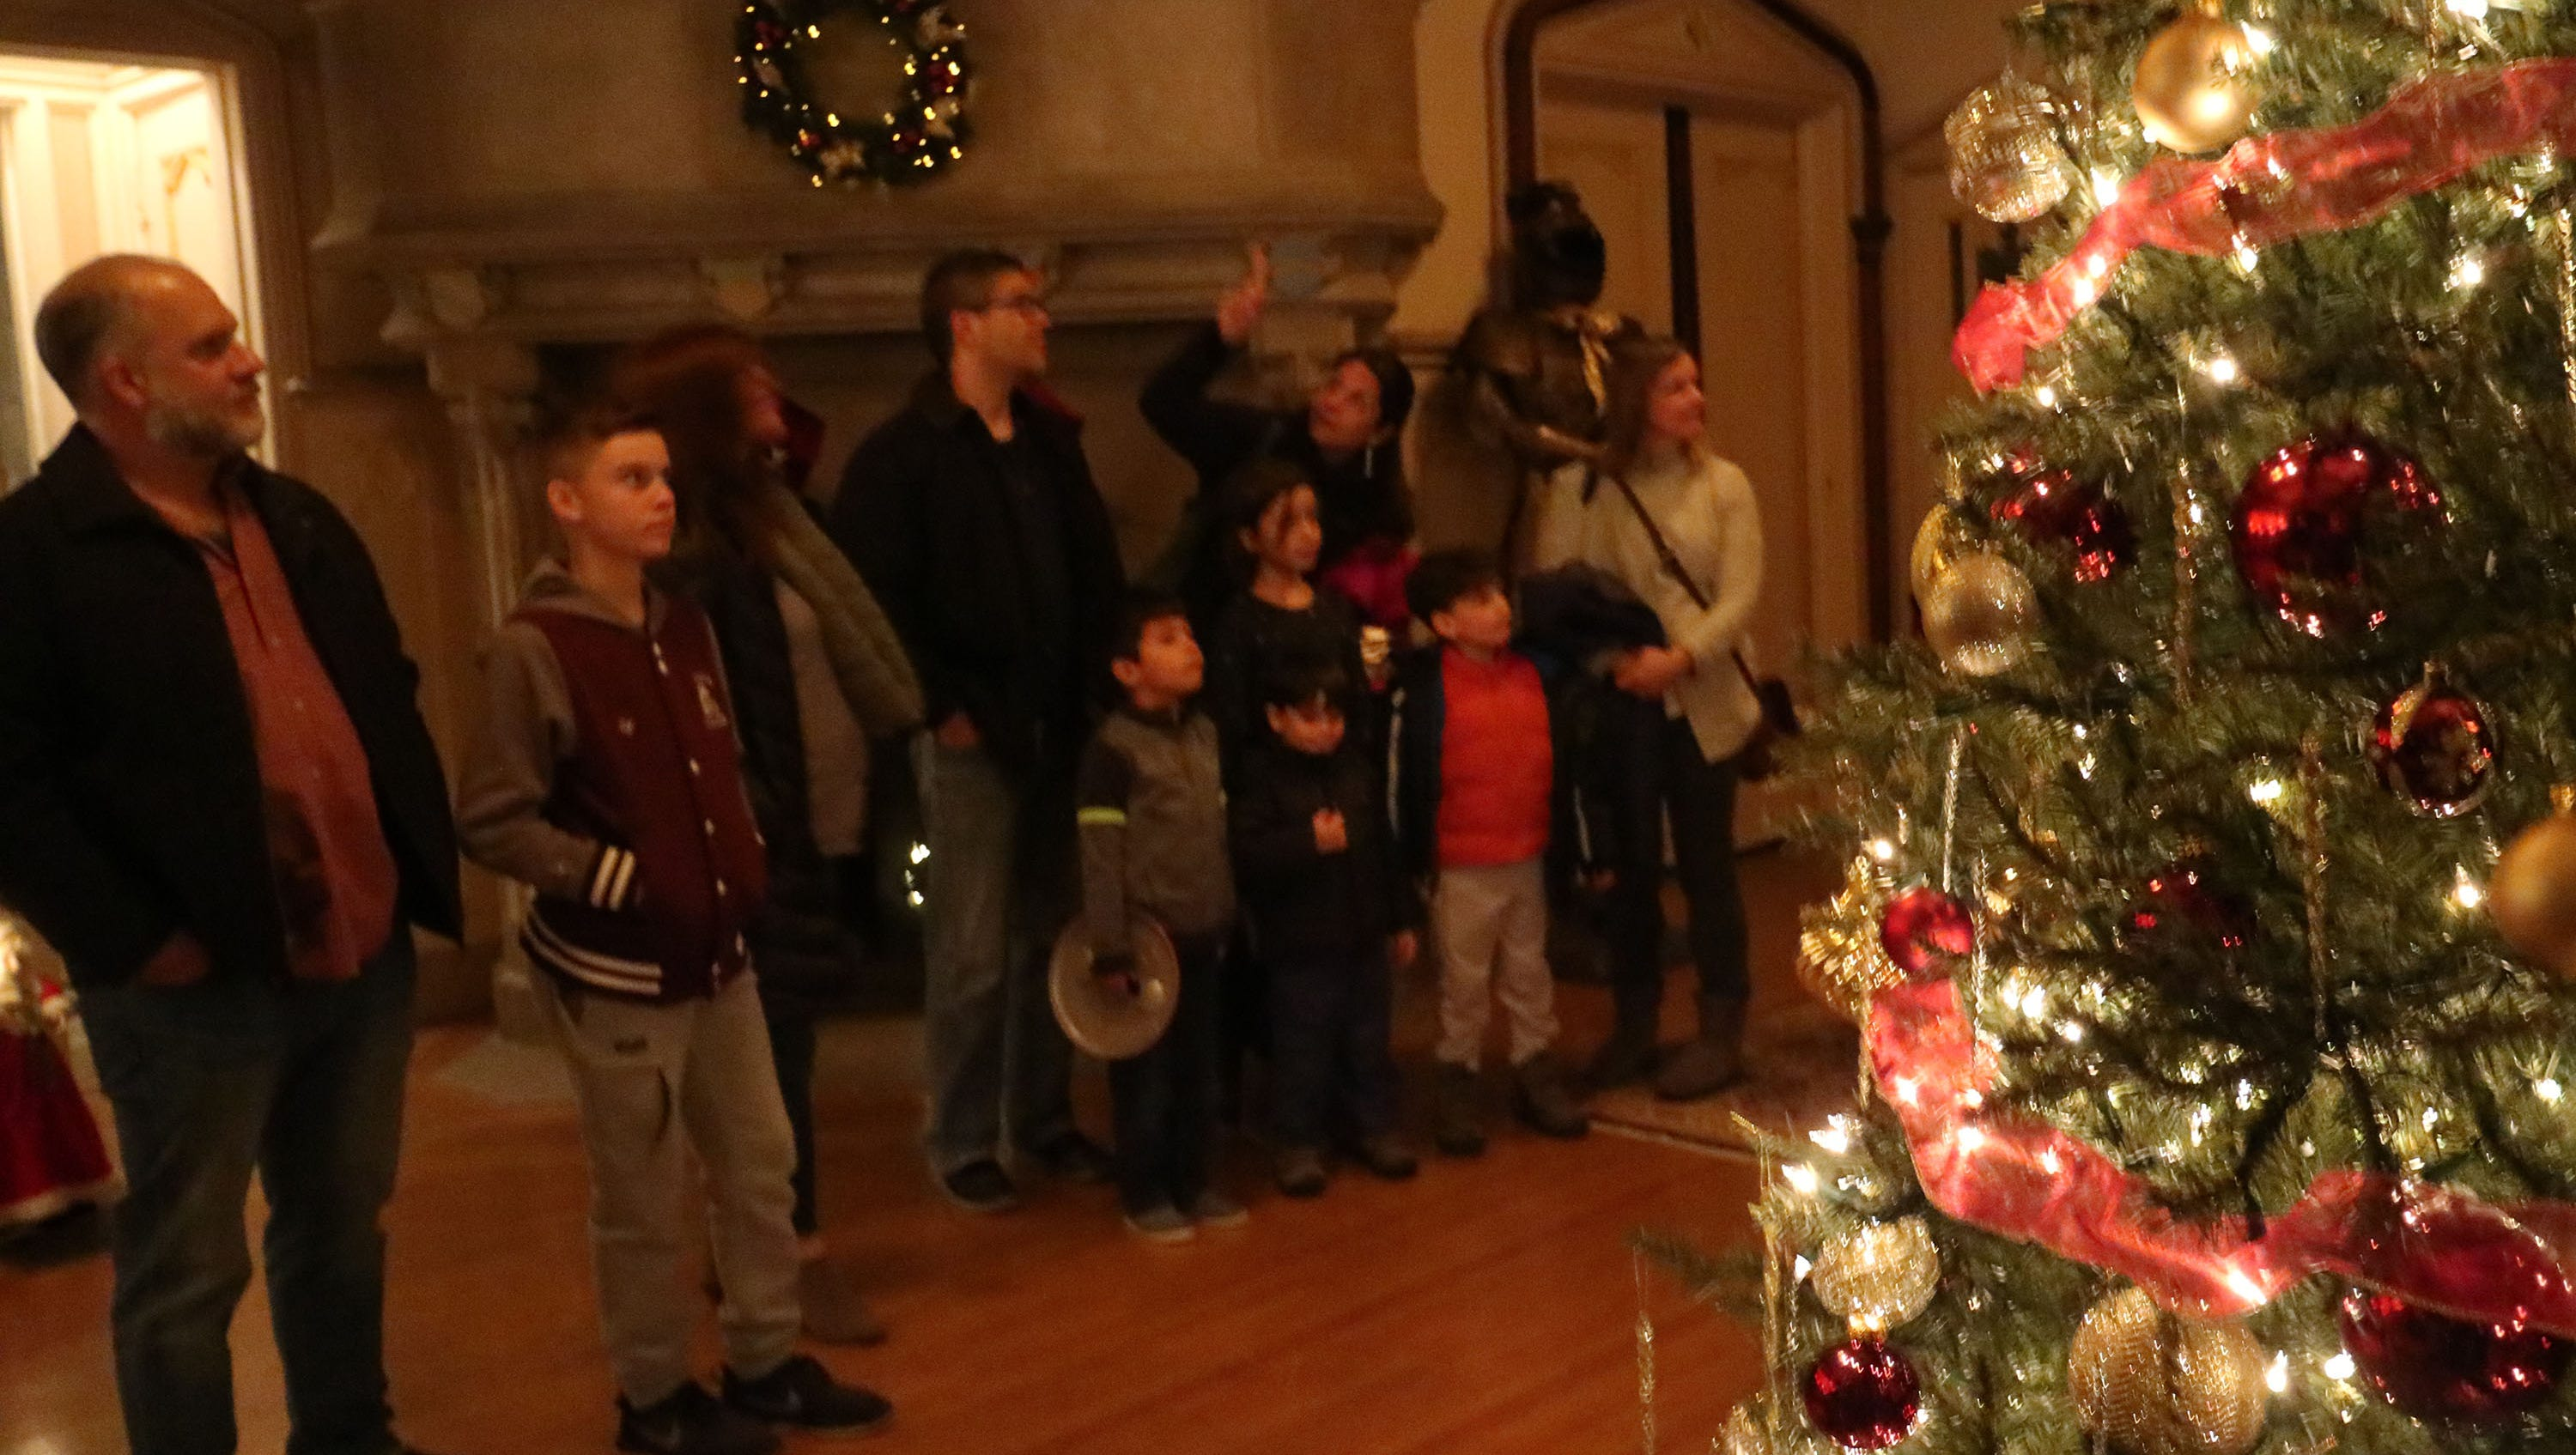 Kips Castle Christmas Tours 2020 Essex County's Kip's Castle, other landmarks, host holiday tours